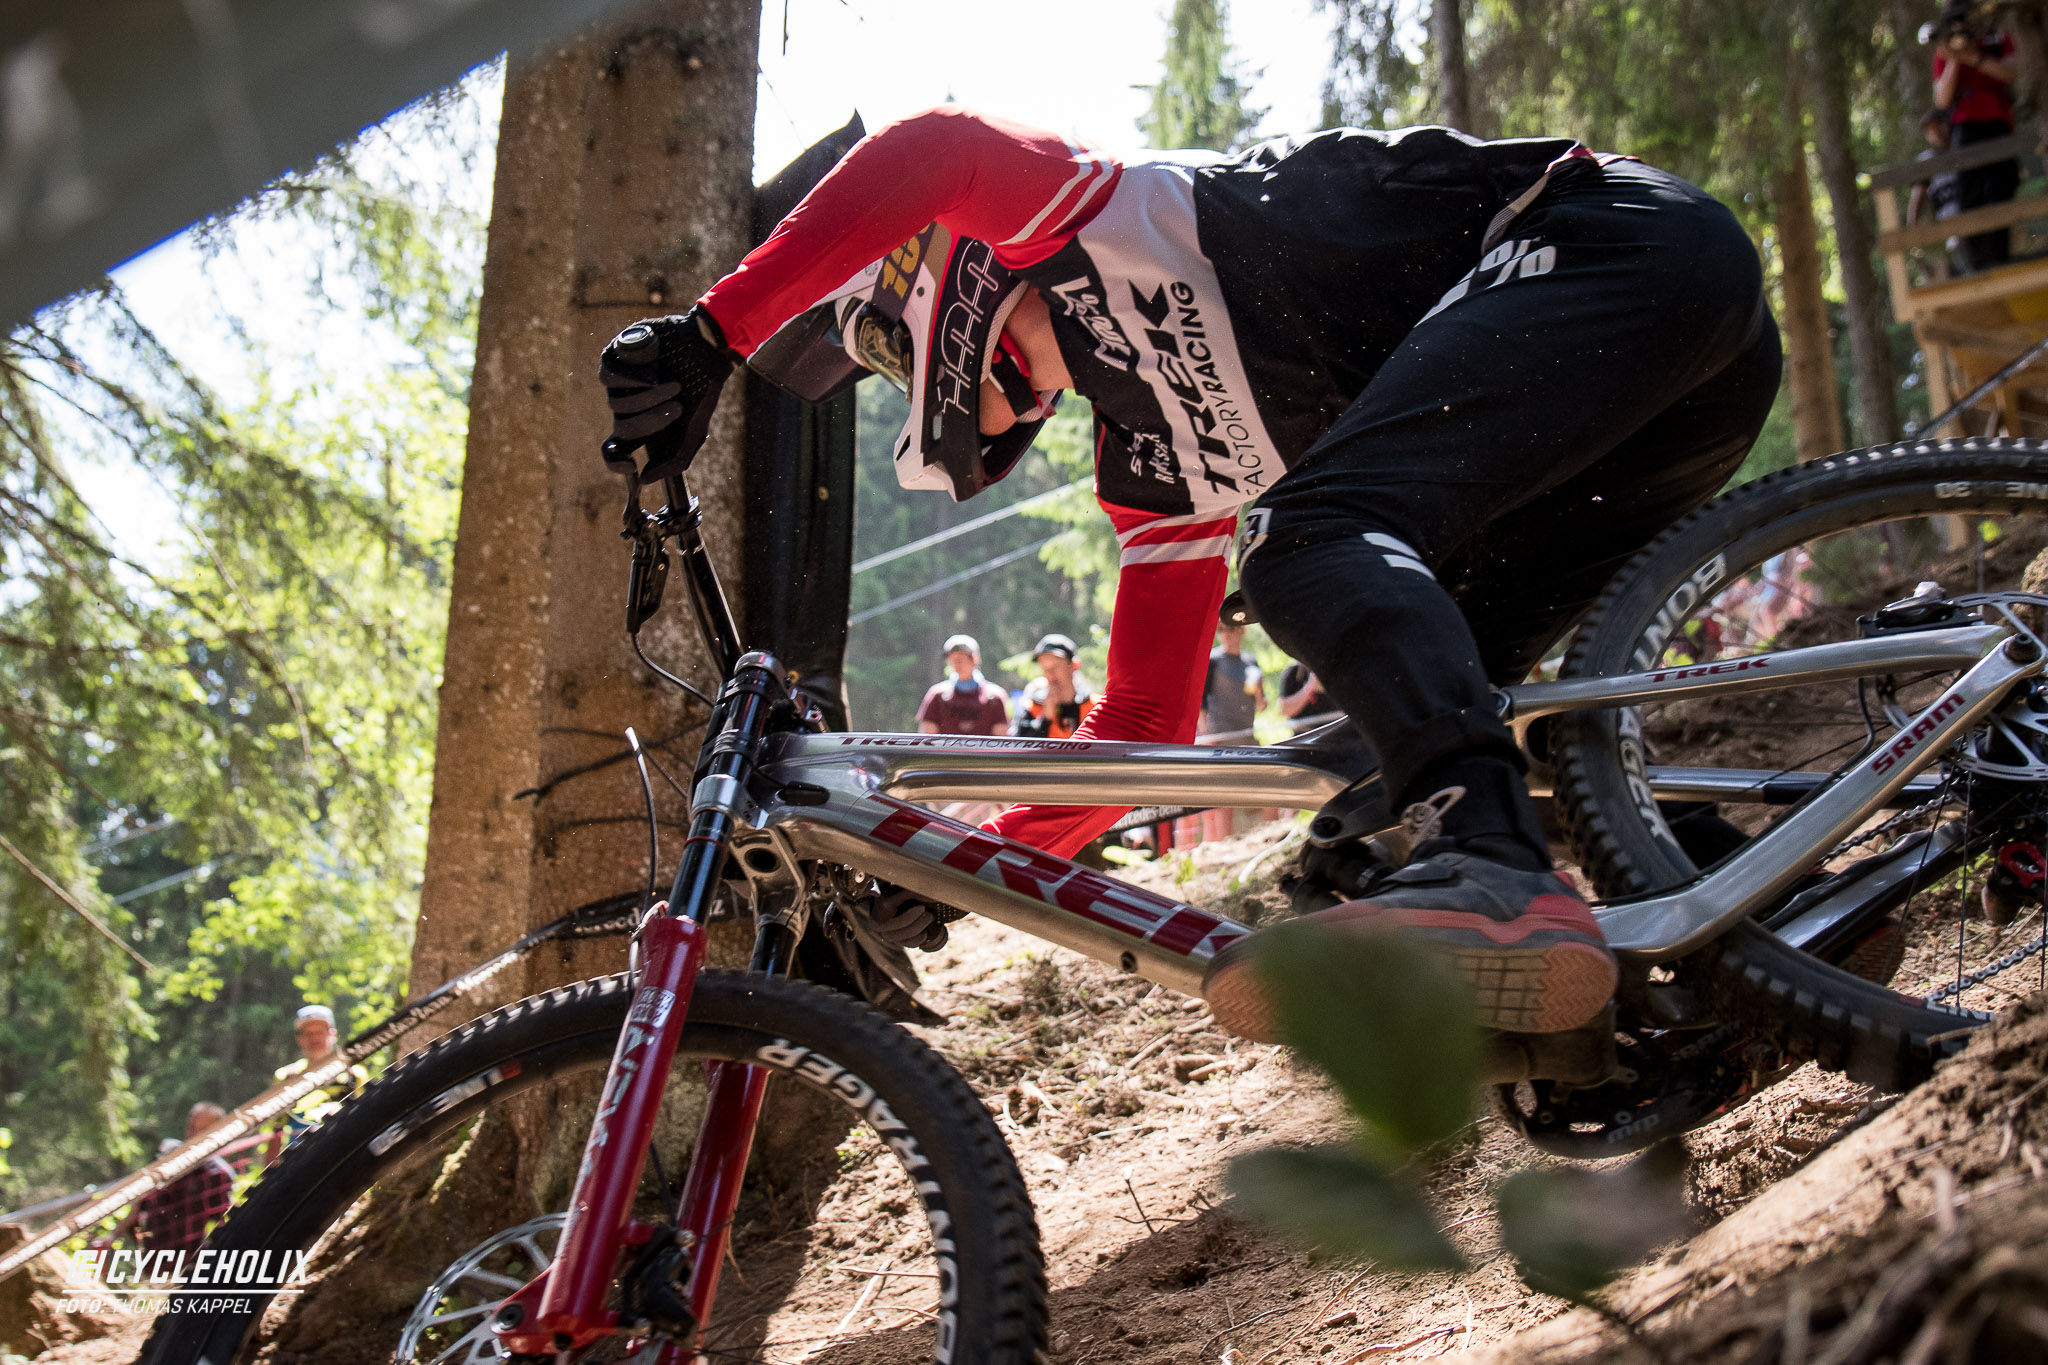 2019 Downhill Worldcup Leogang Finale Action 10 Cycleholix